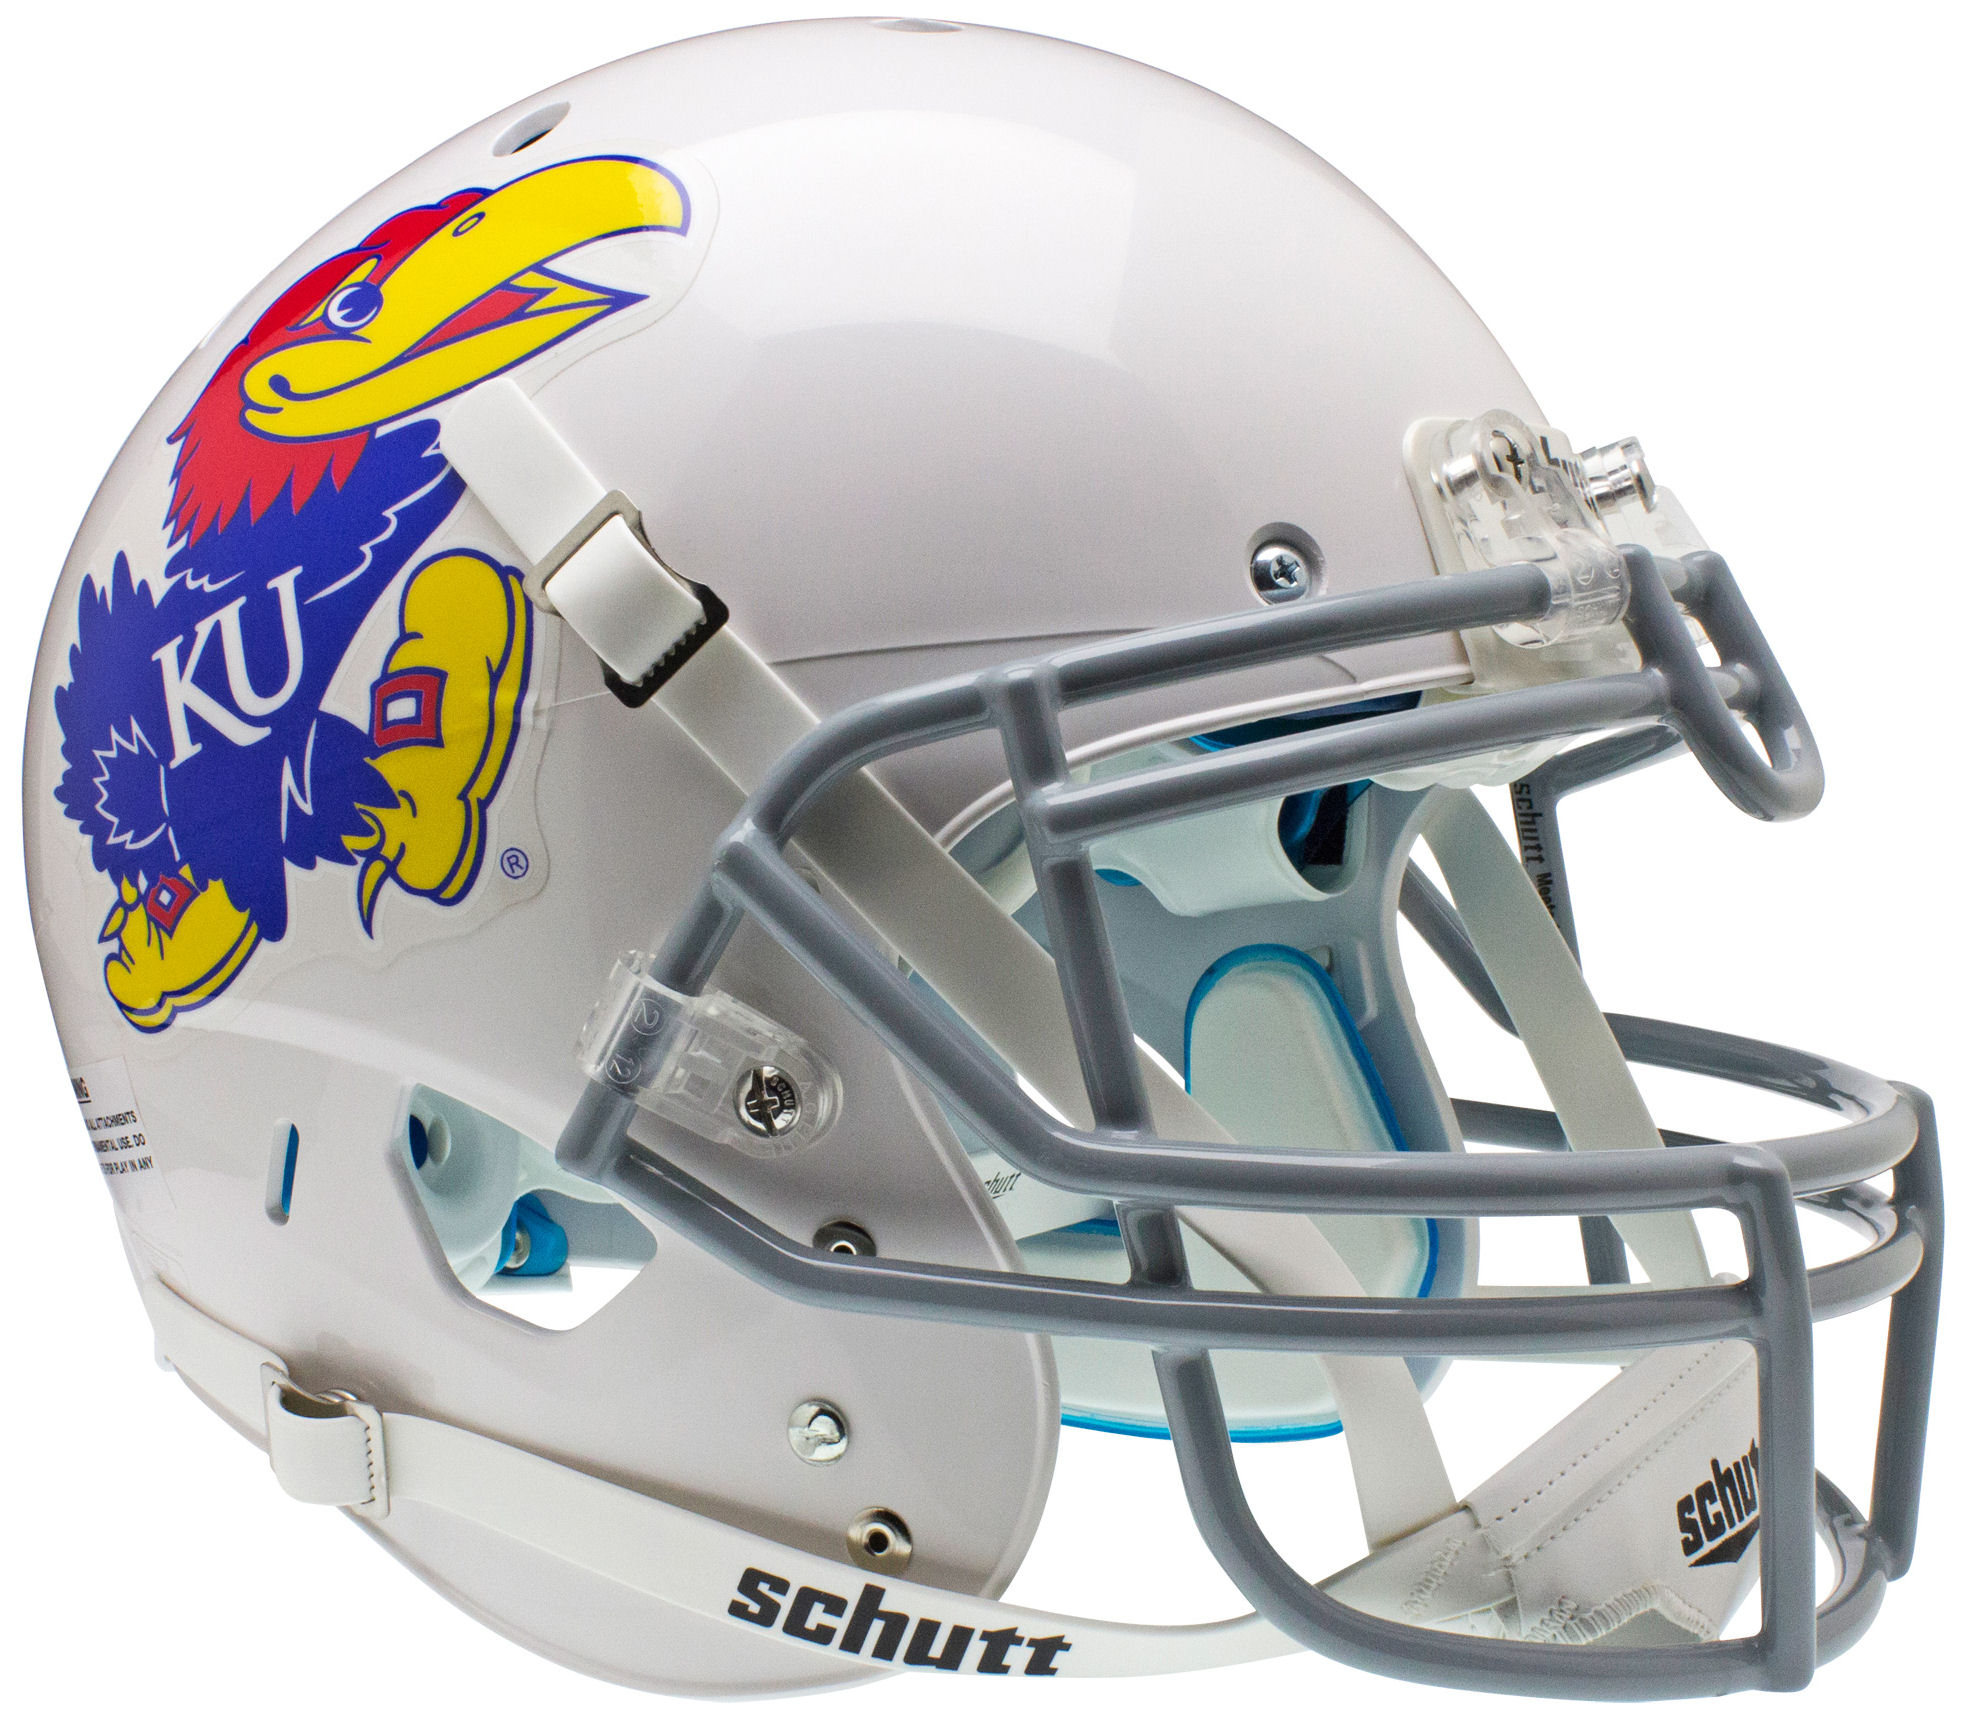 Kansas Jayhawks Authentic College XP Football Helmet Schutt <B>White</B>